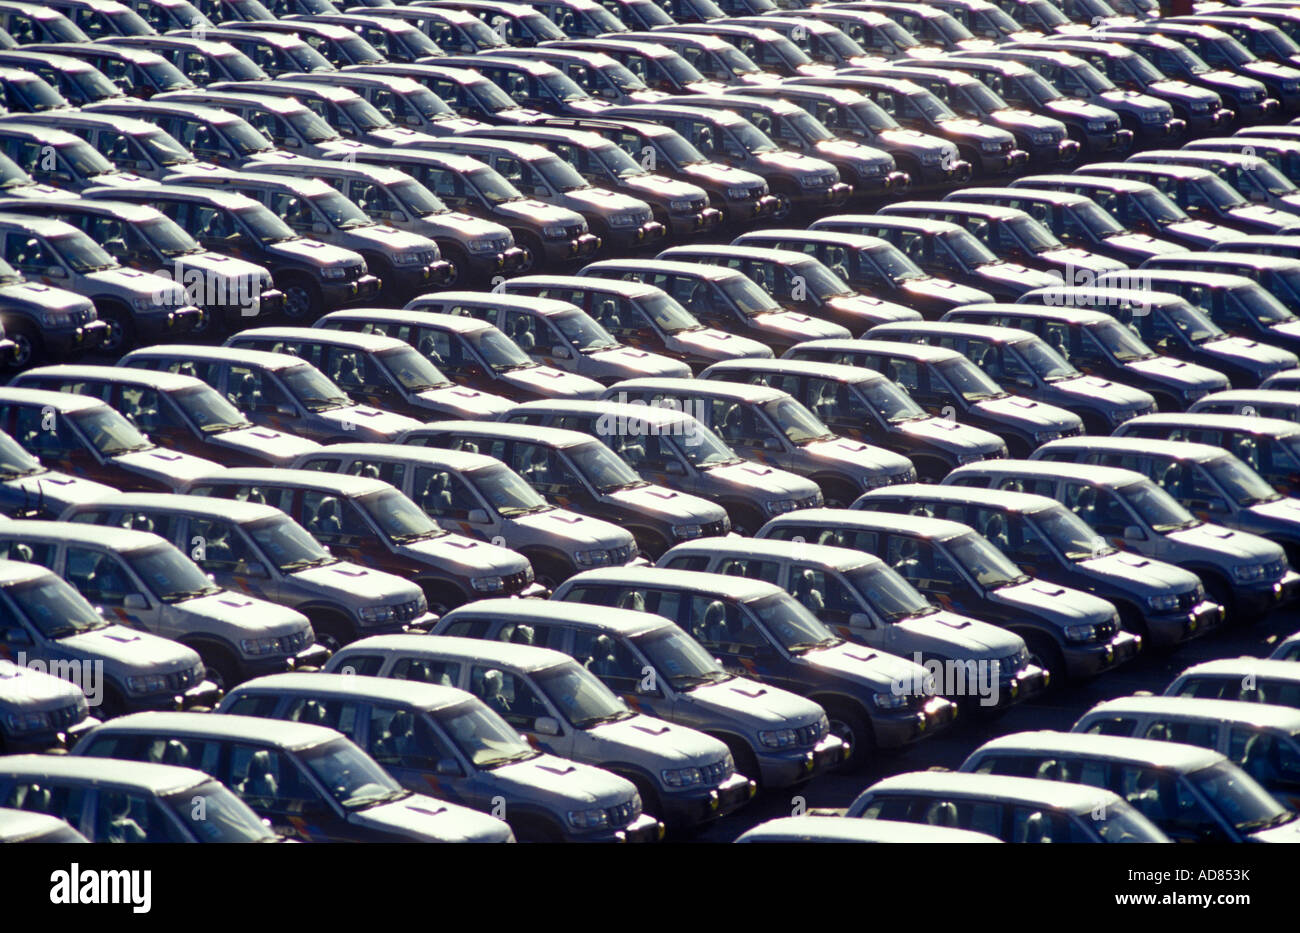 Cars For Exportation Fiat Plant Brazil Automobile Industry Mass ...